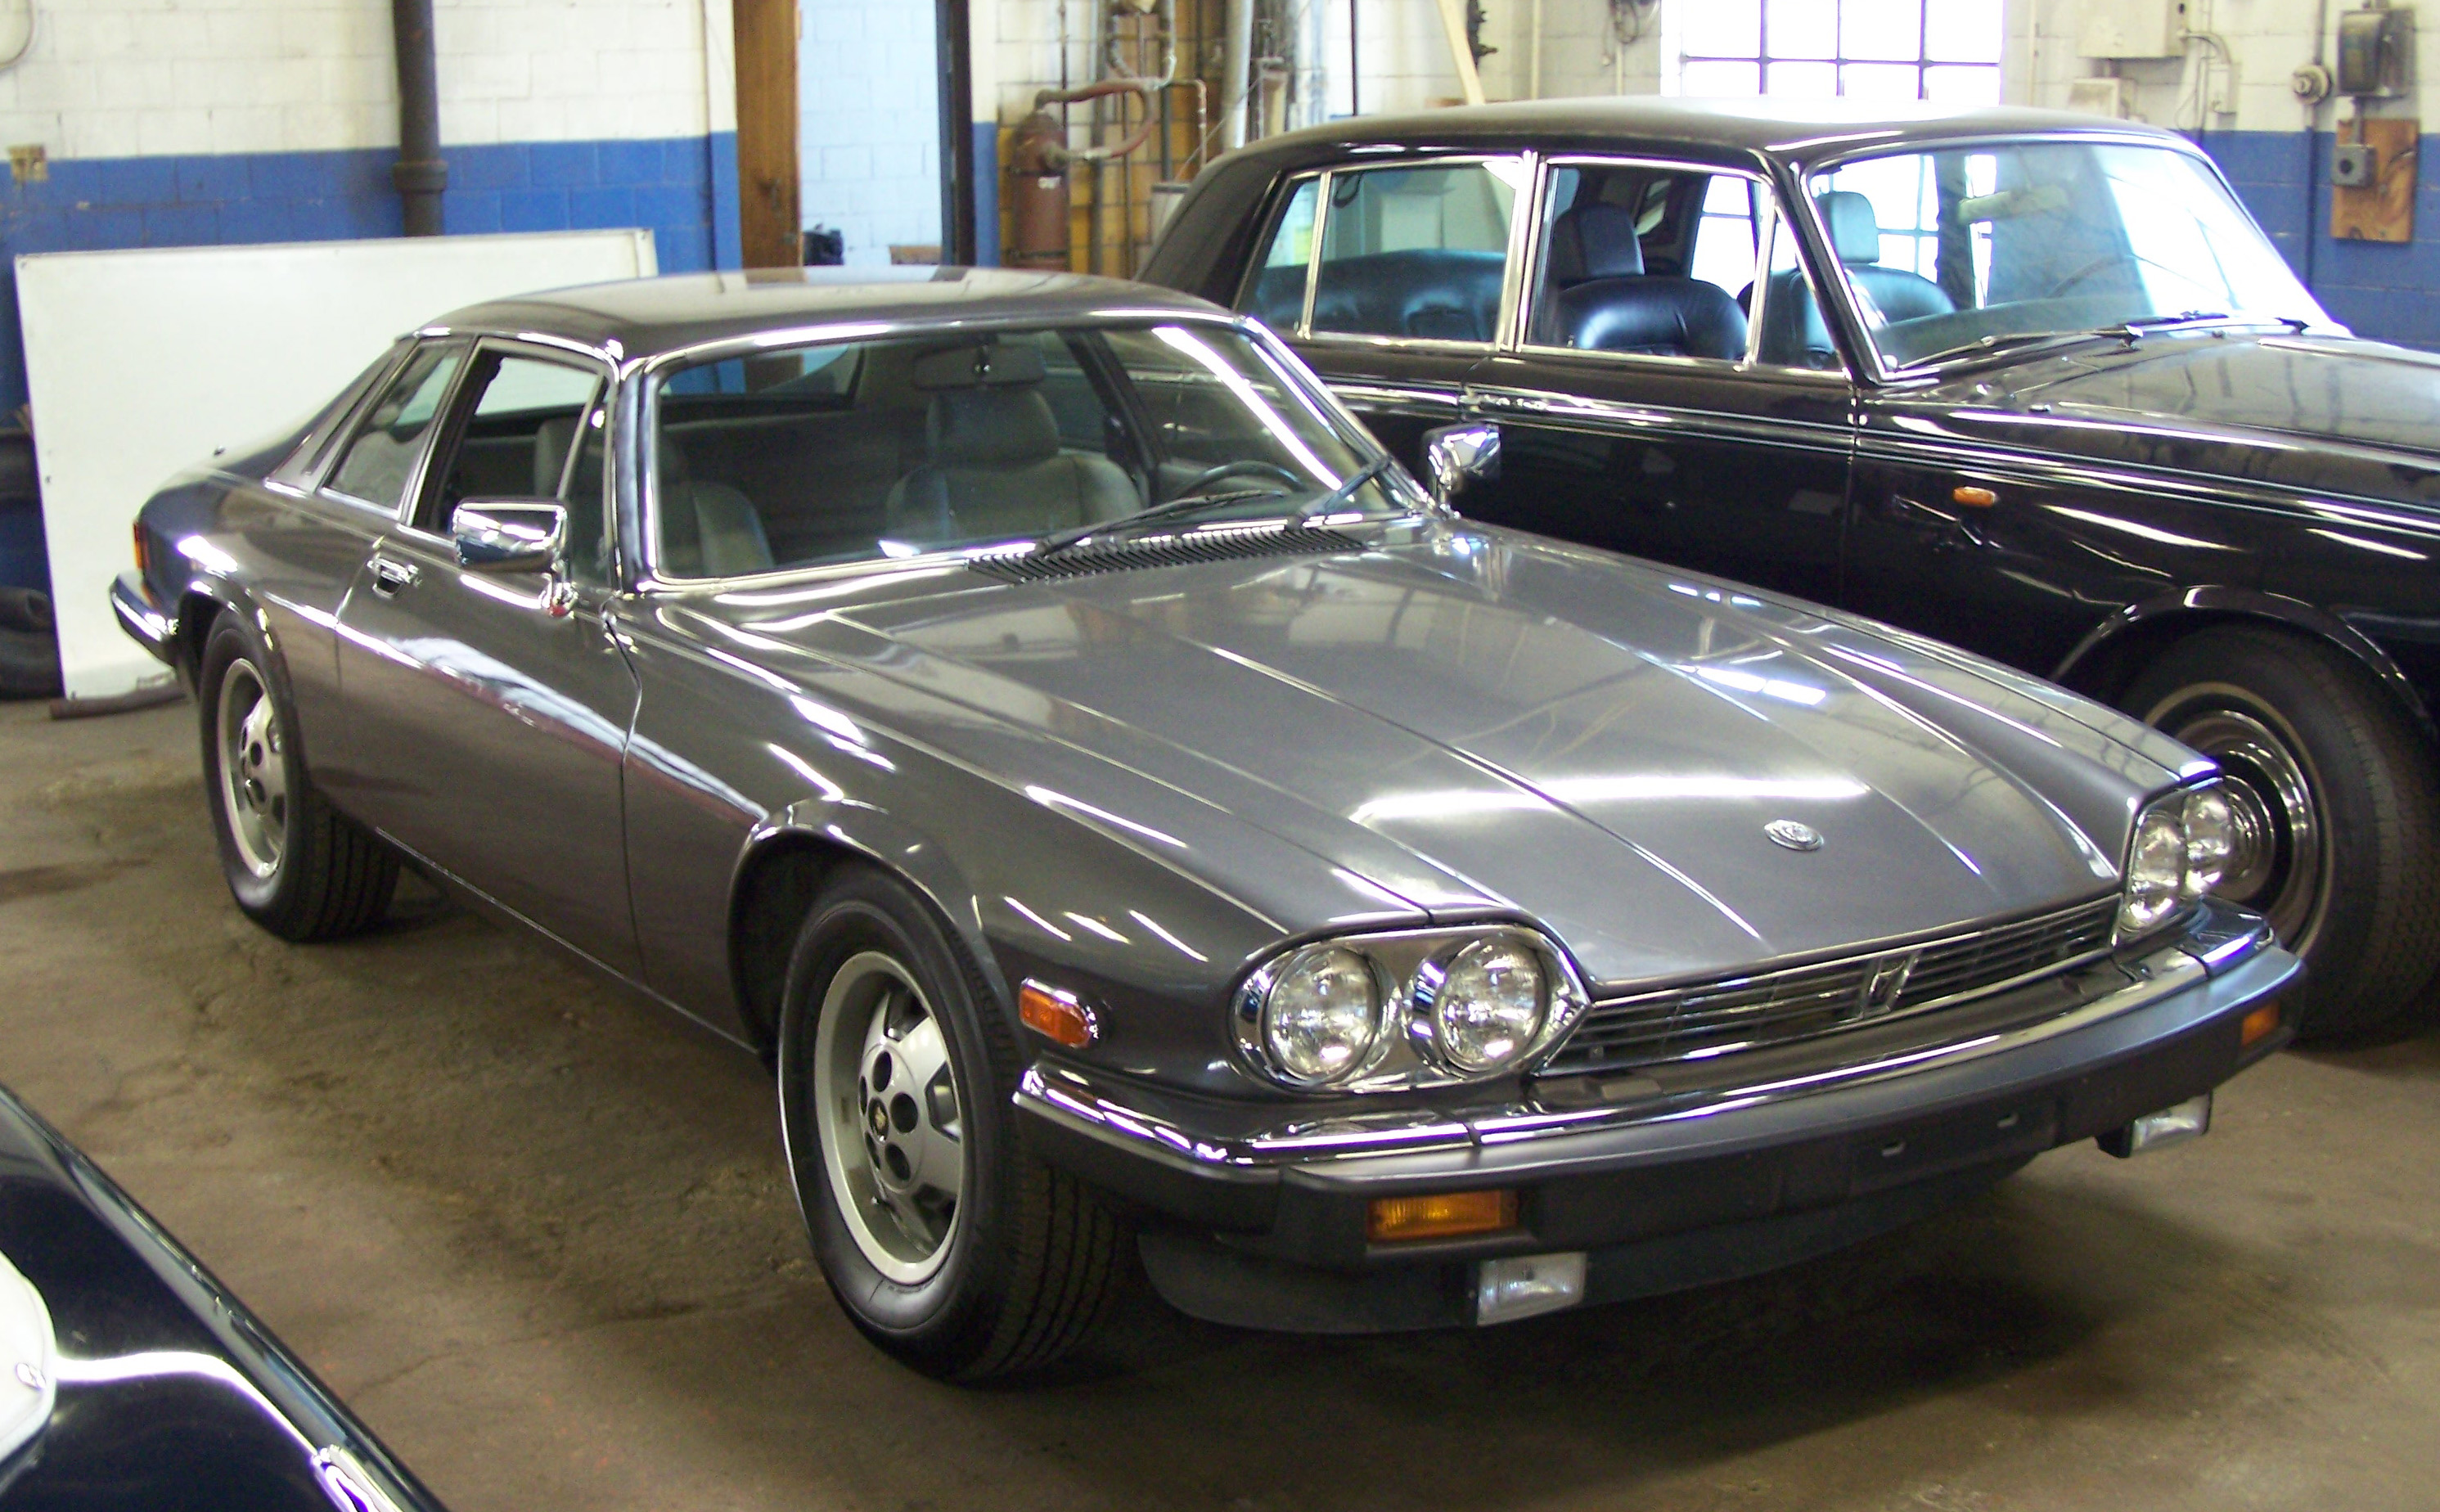 Perfect 1982 jaguar xj6 electrical wiring diagram ornament outstanding 1995 jaguar xj6 wiring diagram embellishment wiring cheapraybanclubmaster Image collections